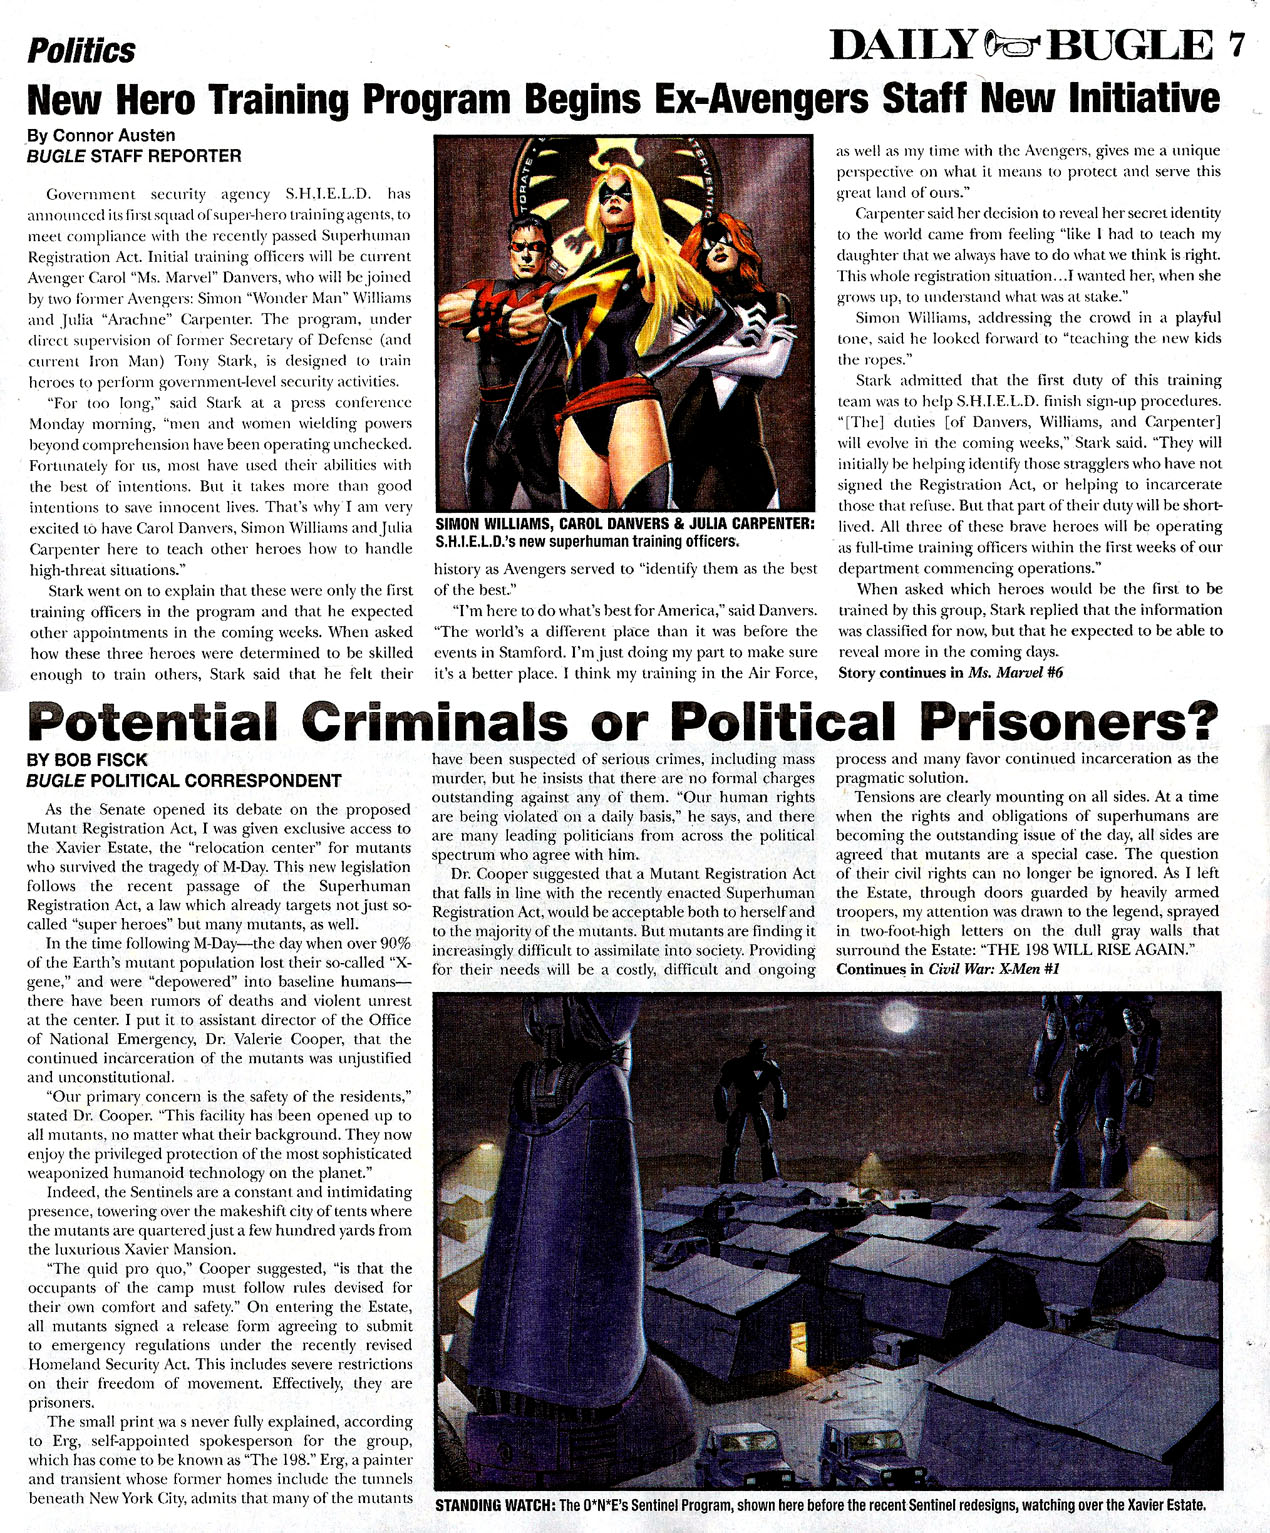 Read online Daily Bugle (2006) comic -  Issue #0 - 7